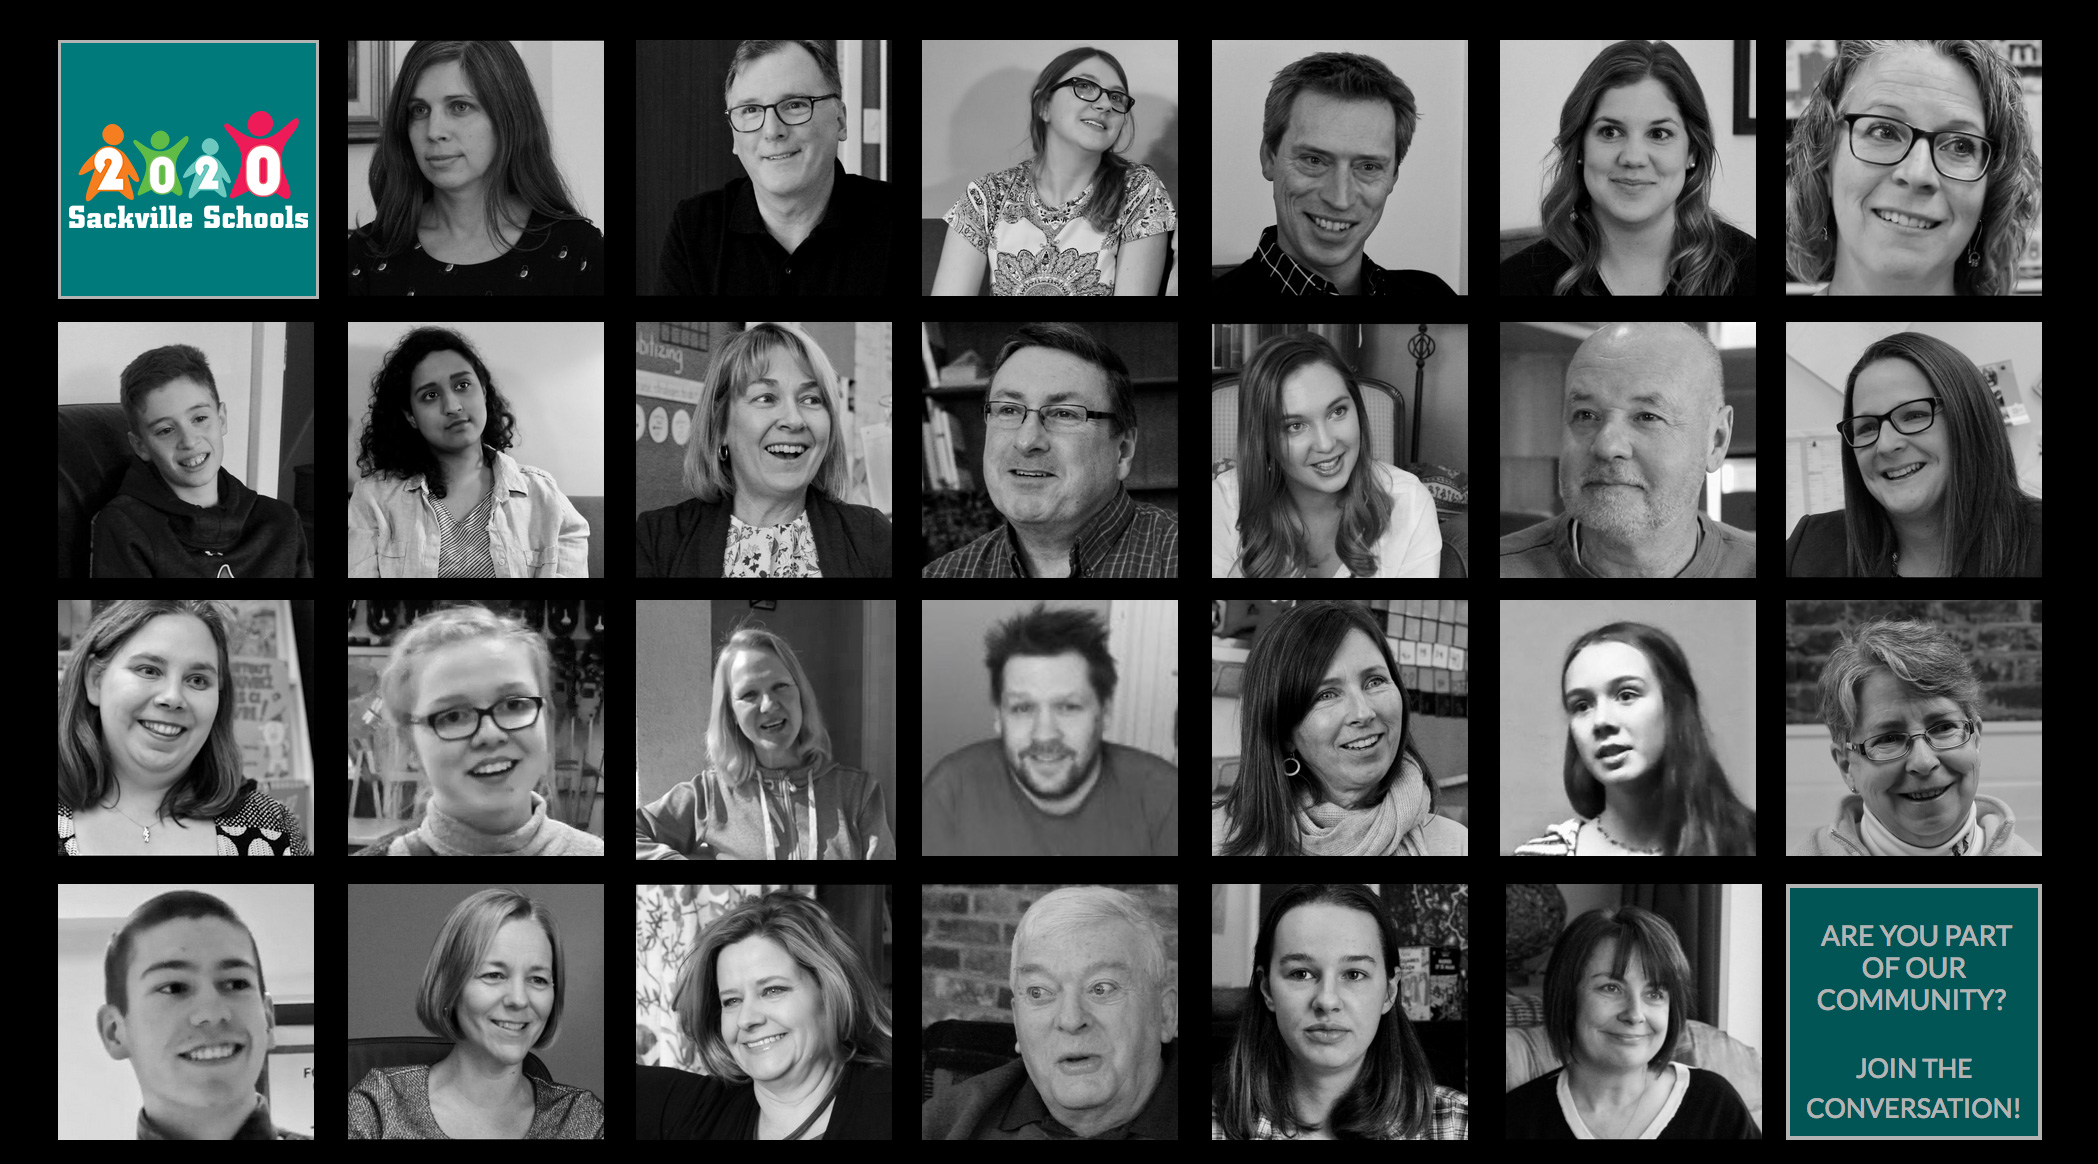 Above are just some of the voices from the community that have contributed to the Sackville Schools 2020 movement over the past 3 years.